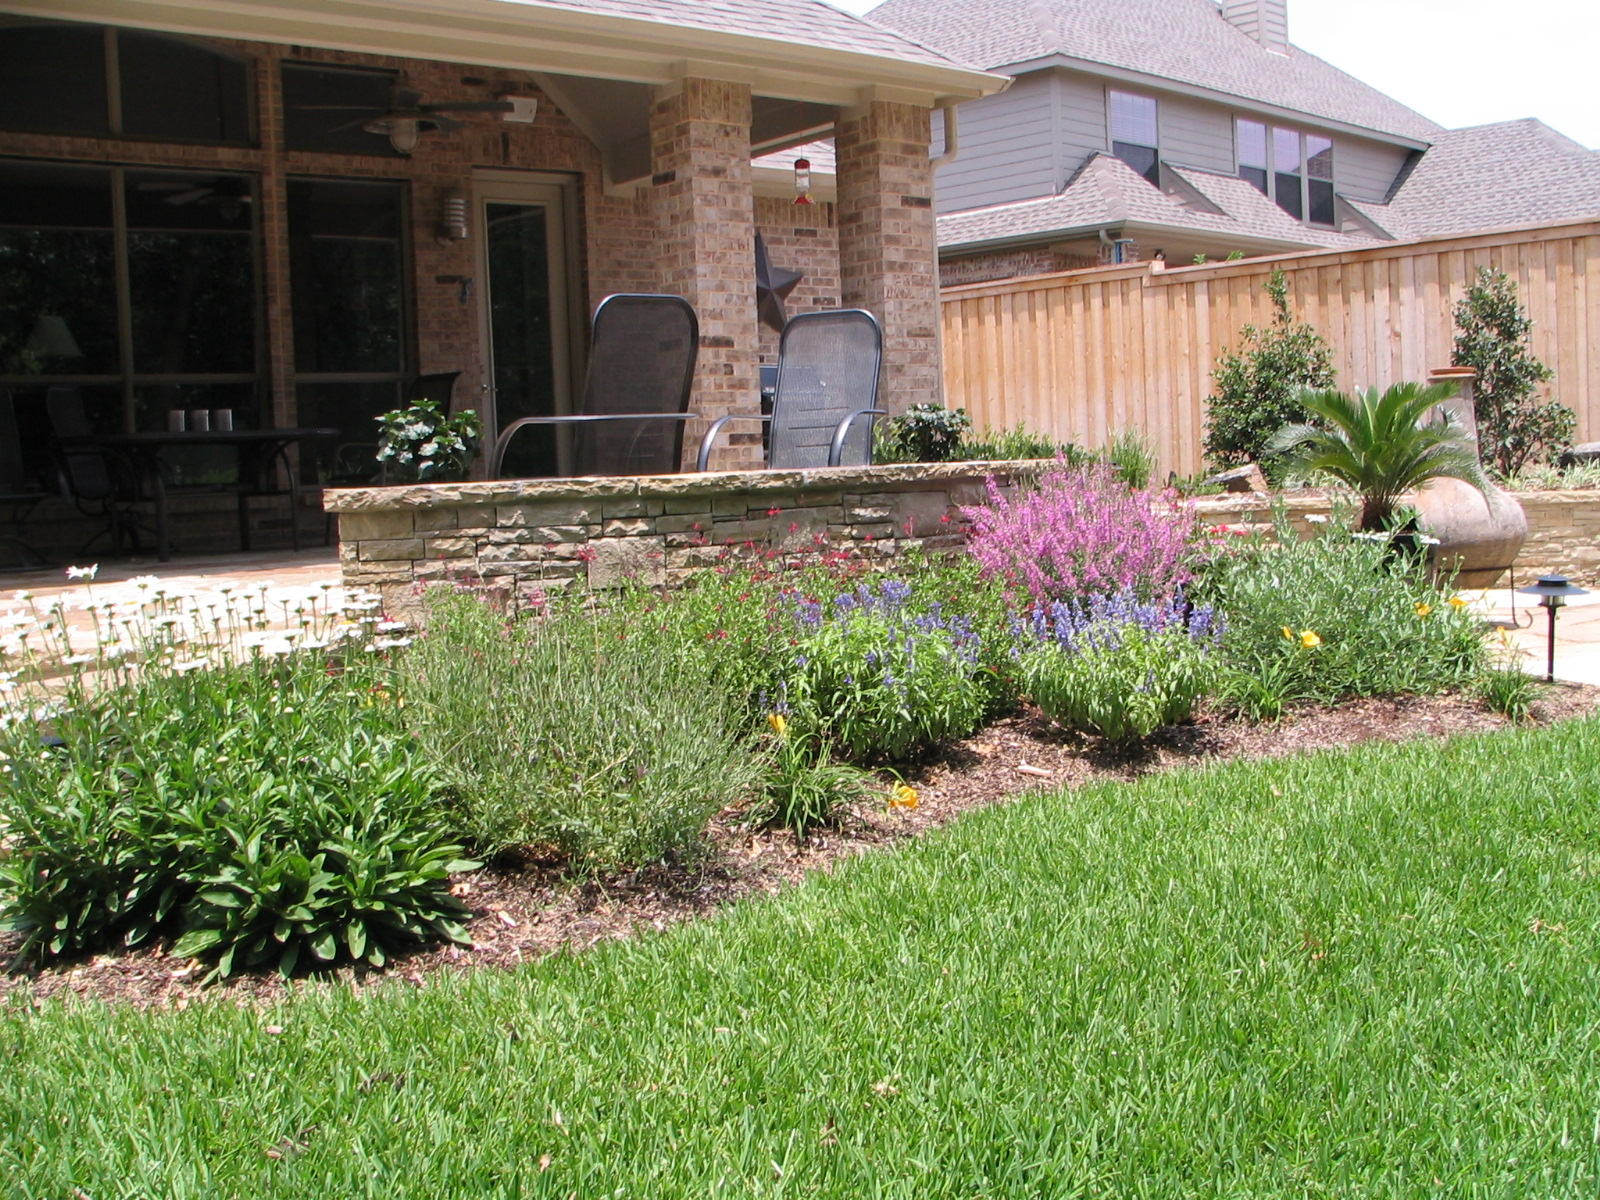 Plm professional landscape management in carrollton tx for Garden design landscaping farmers branch